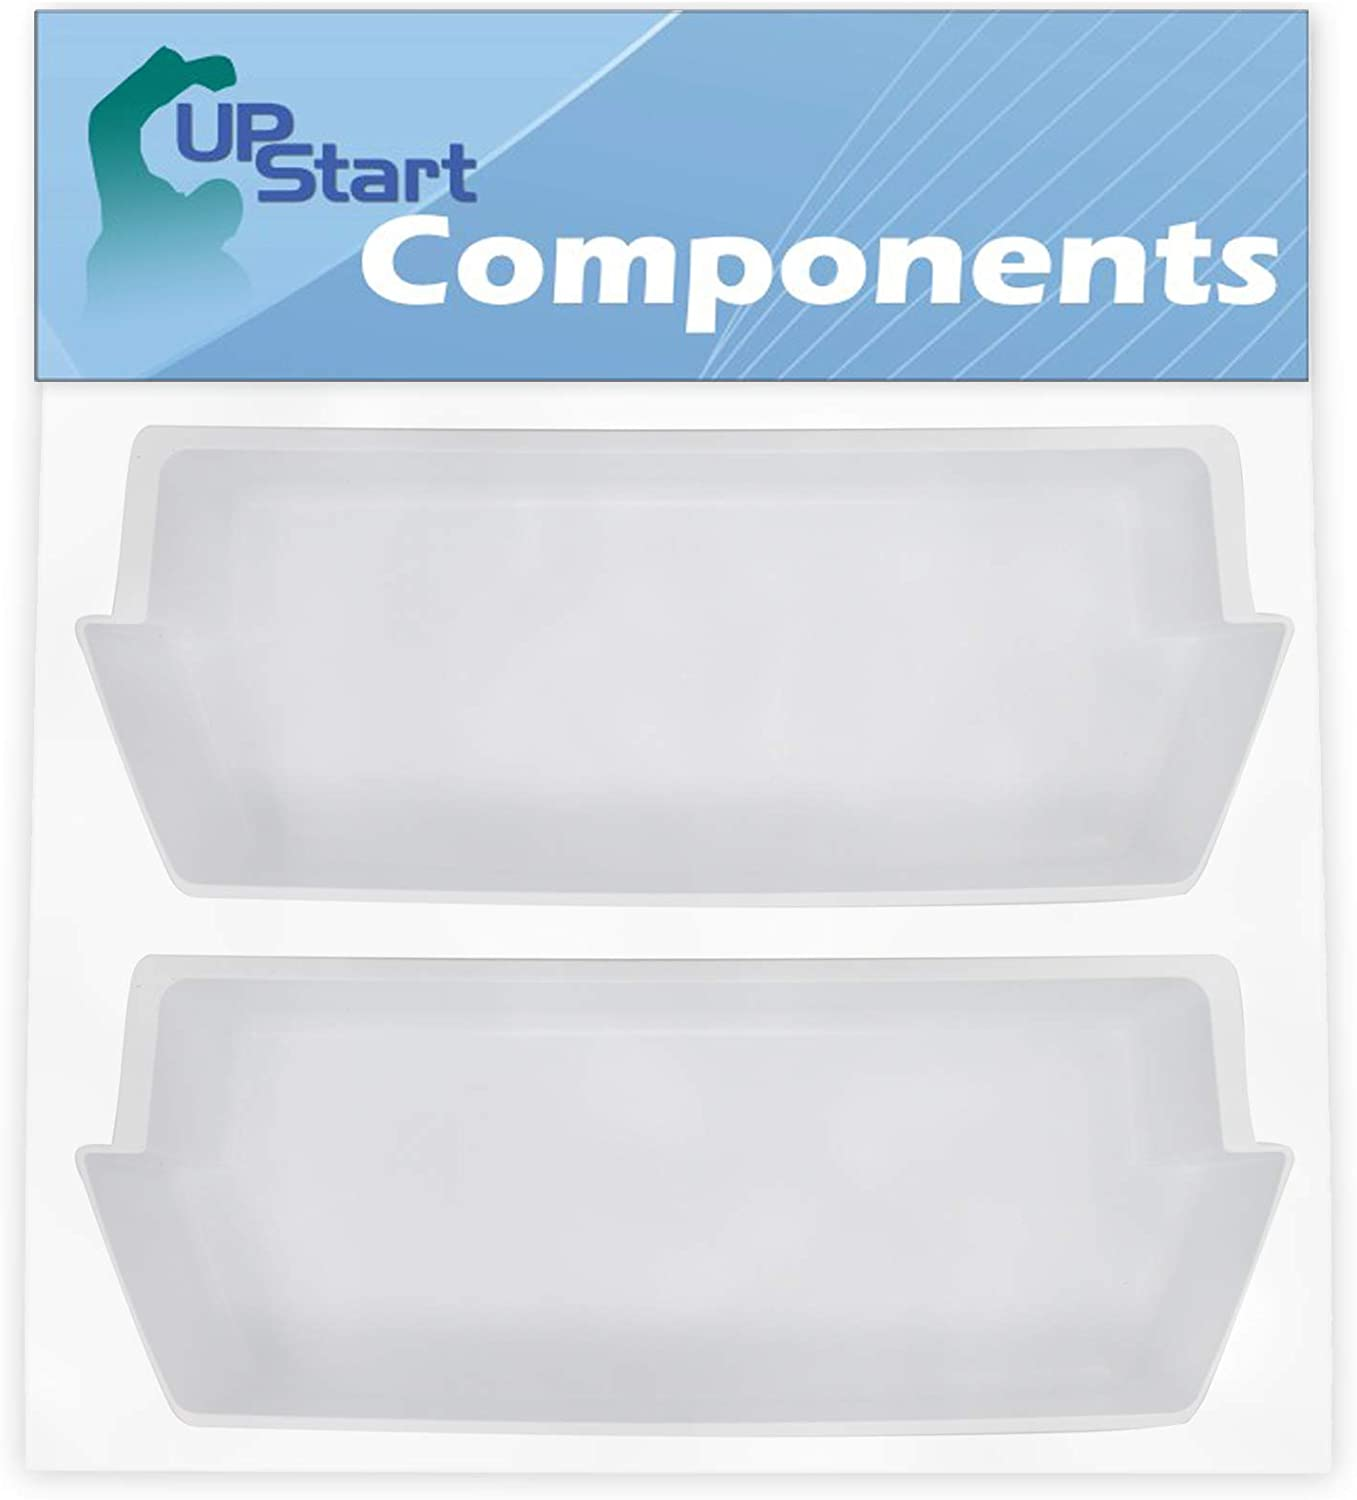 2-Pack 2187172 Refrigerator Door Bin for Fort Worth Mall E Whirlpool Ranking TOP3 Replacement